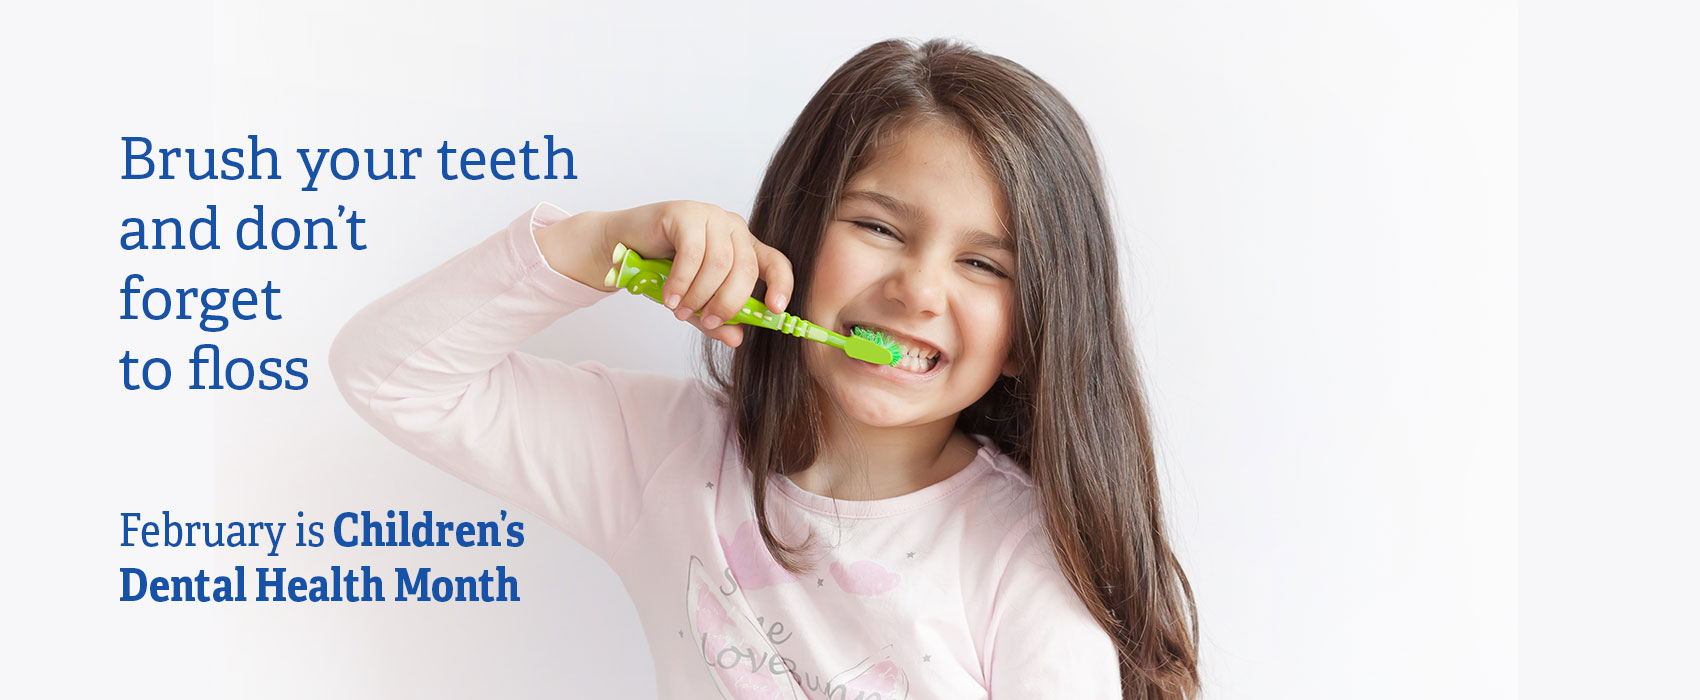 Image of young girl brushing her teeth